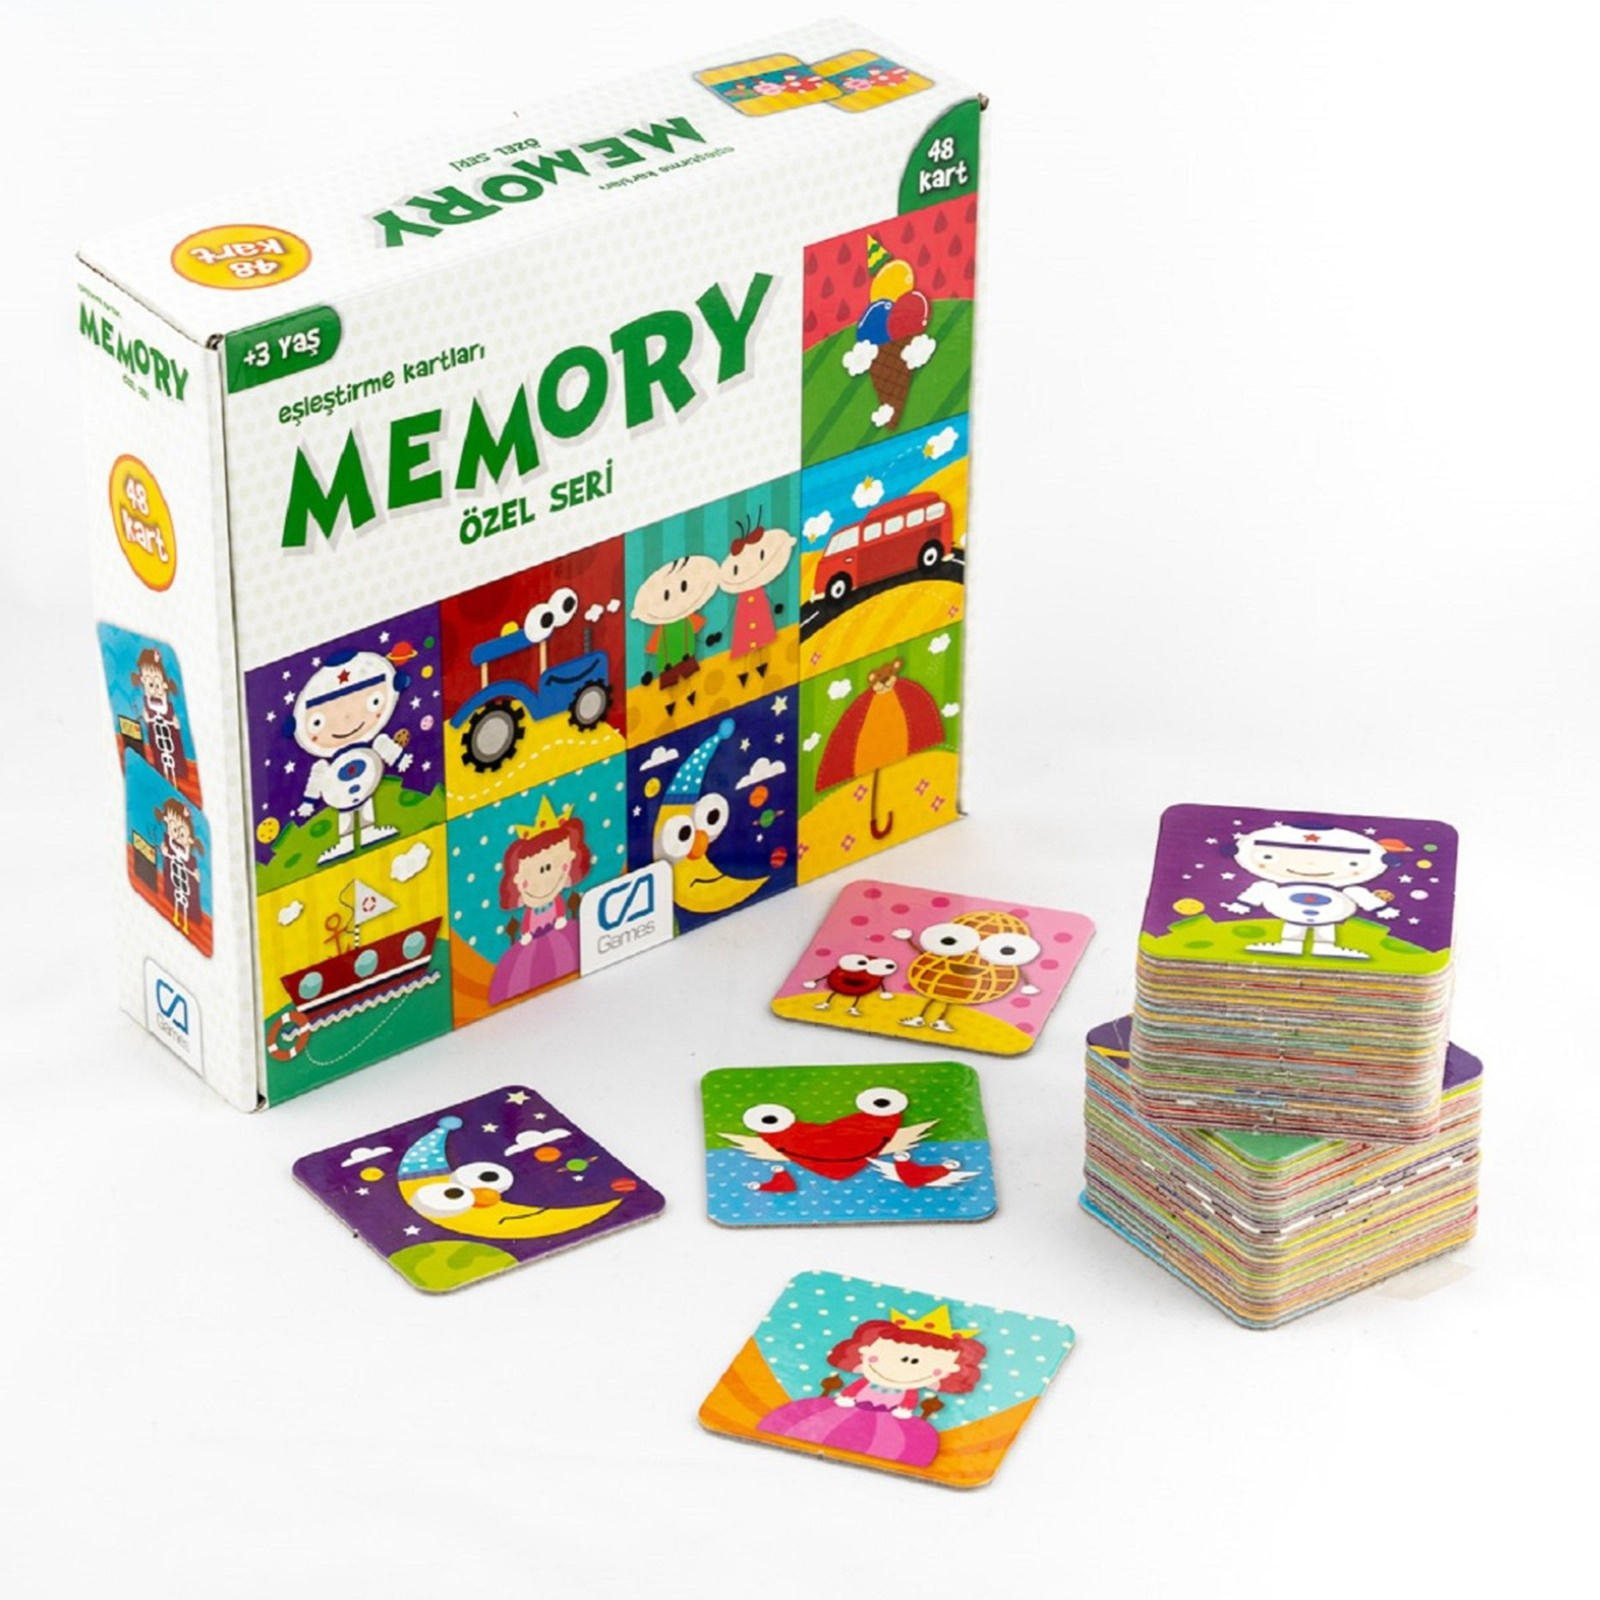 Ebebek Ca Games Memory Special Series 48 Card 3 Years+